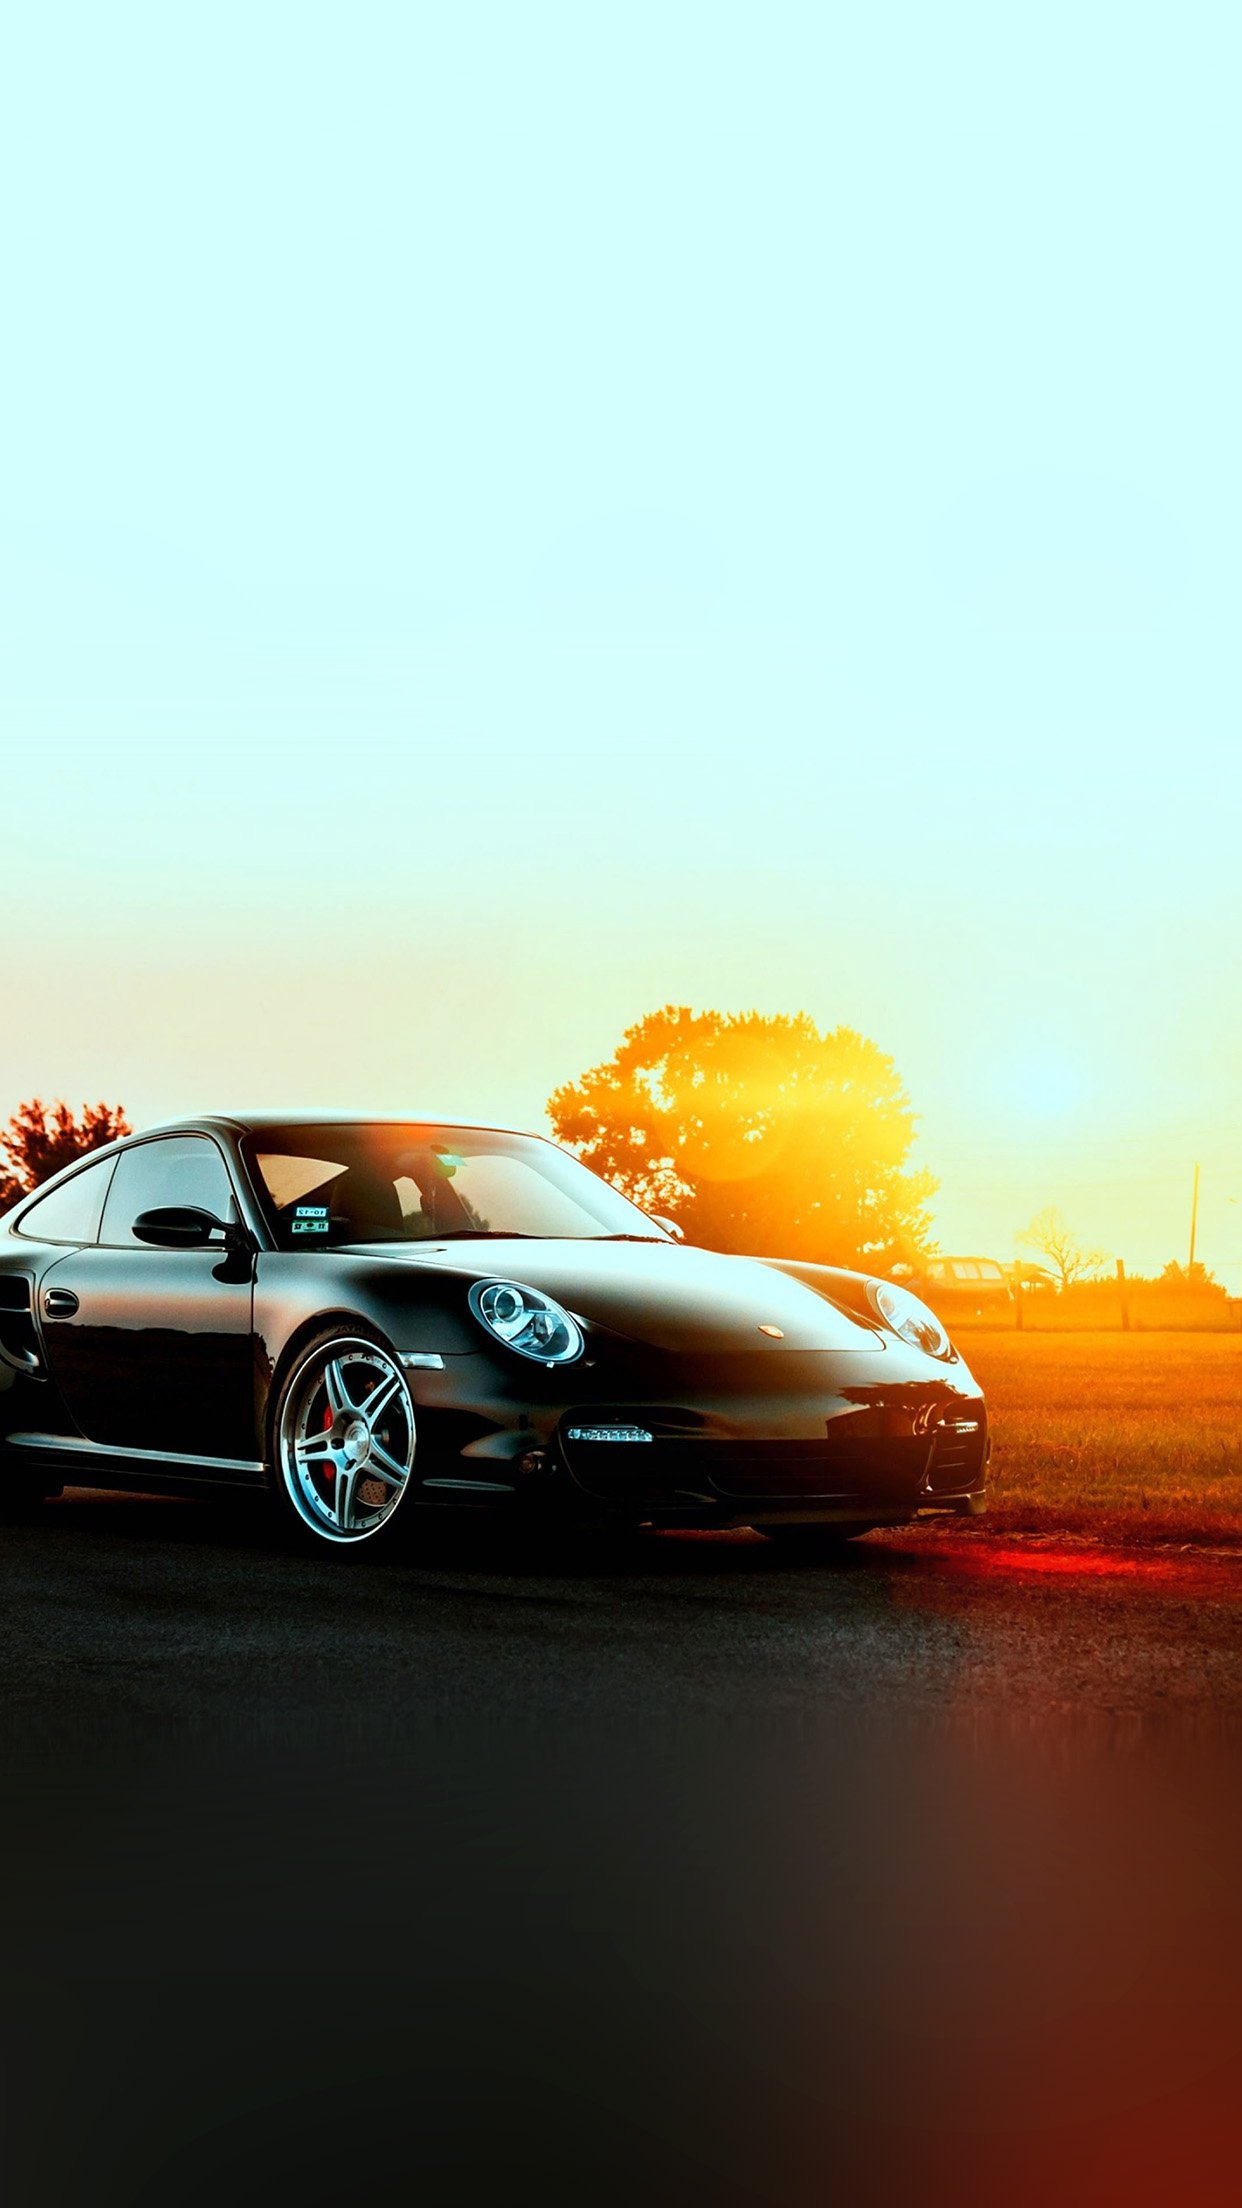 Porche Art Sunset Nature Supercar Android Wallpaper Android Hd